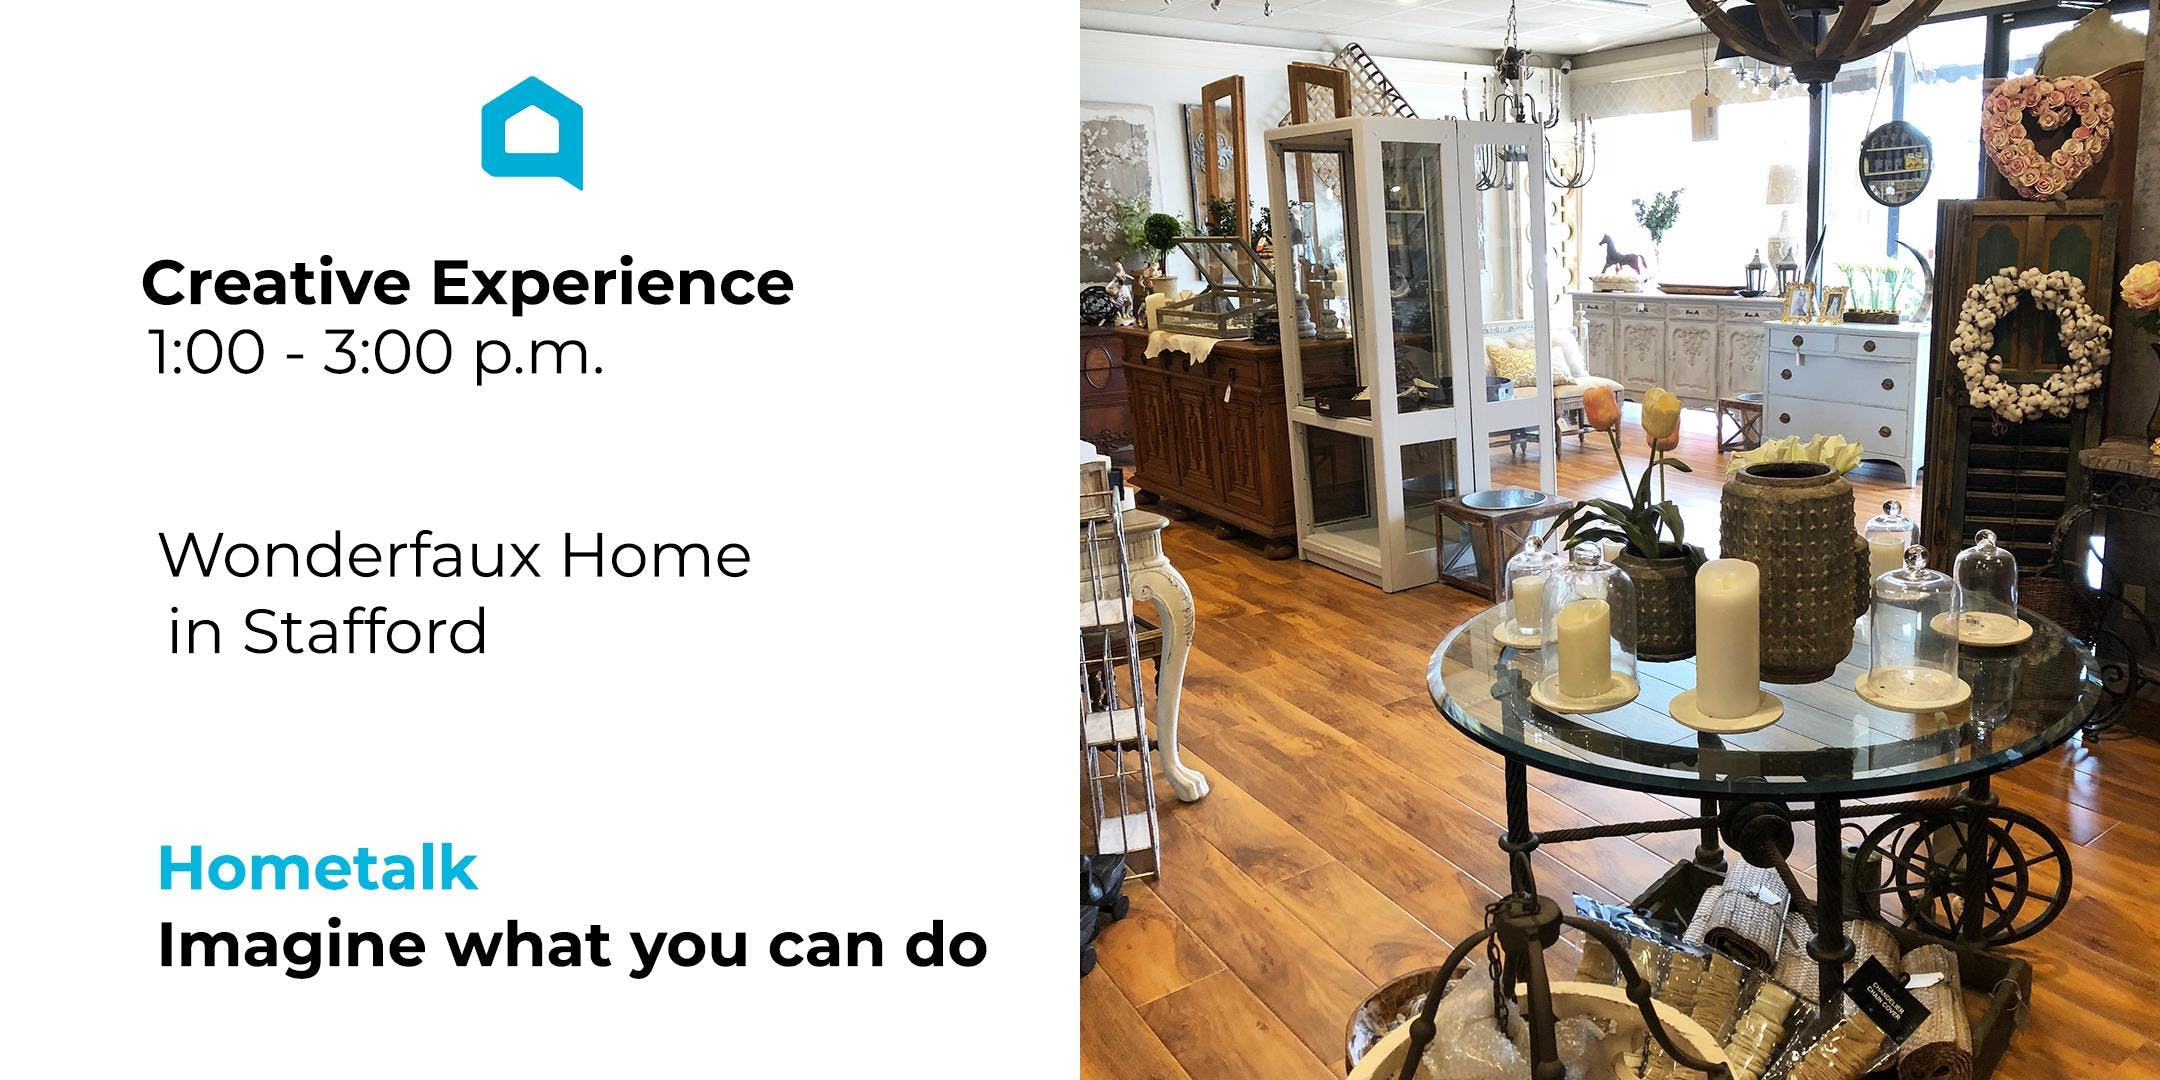 Creative Experience with Hometalk at Wonderfaux Home